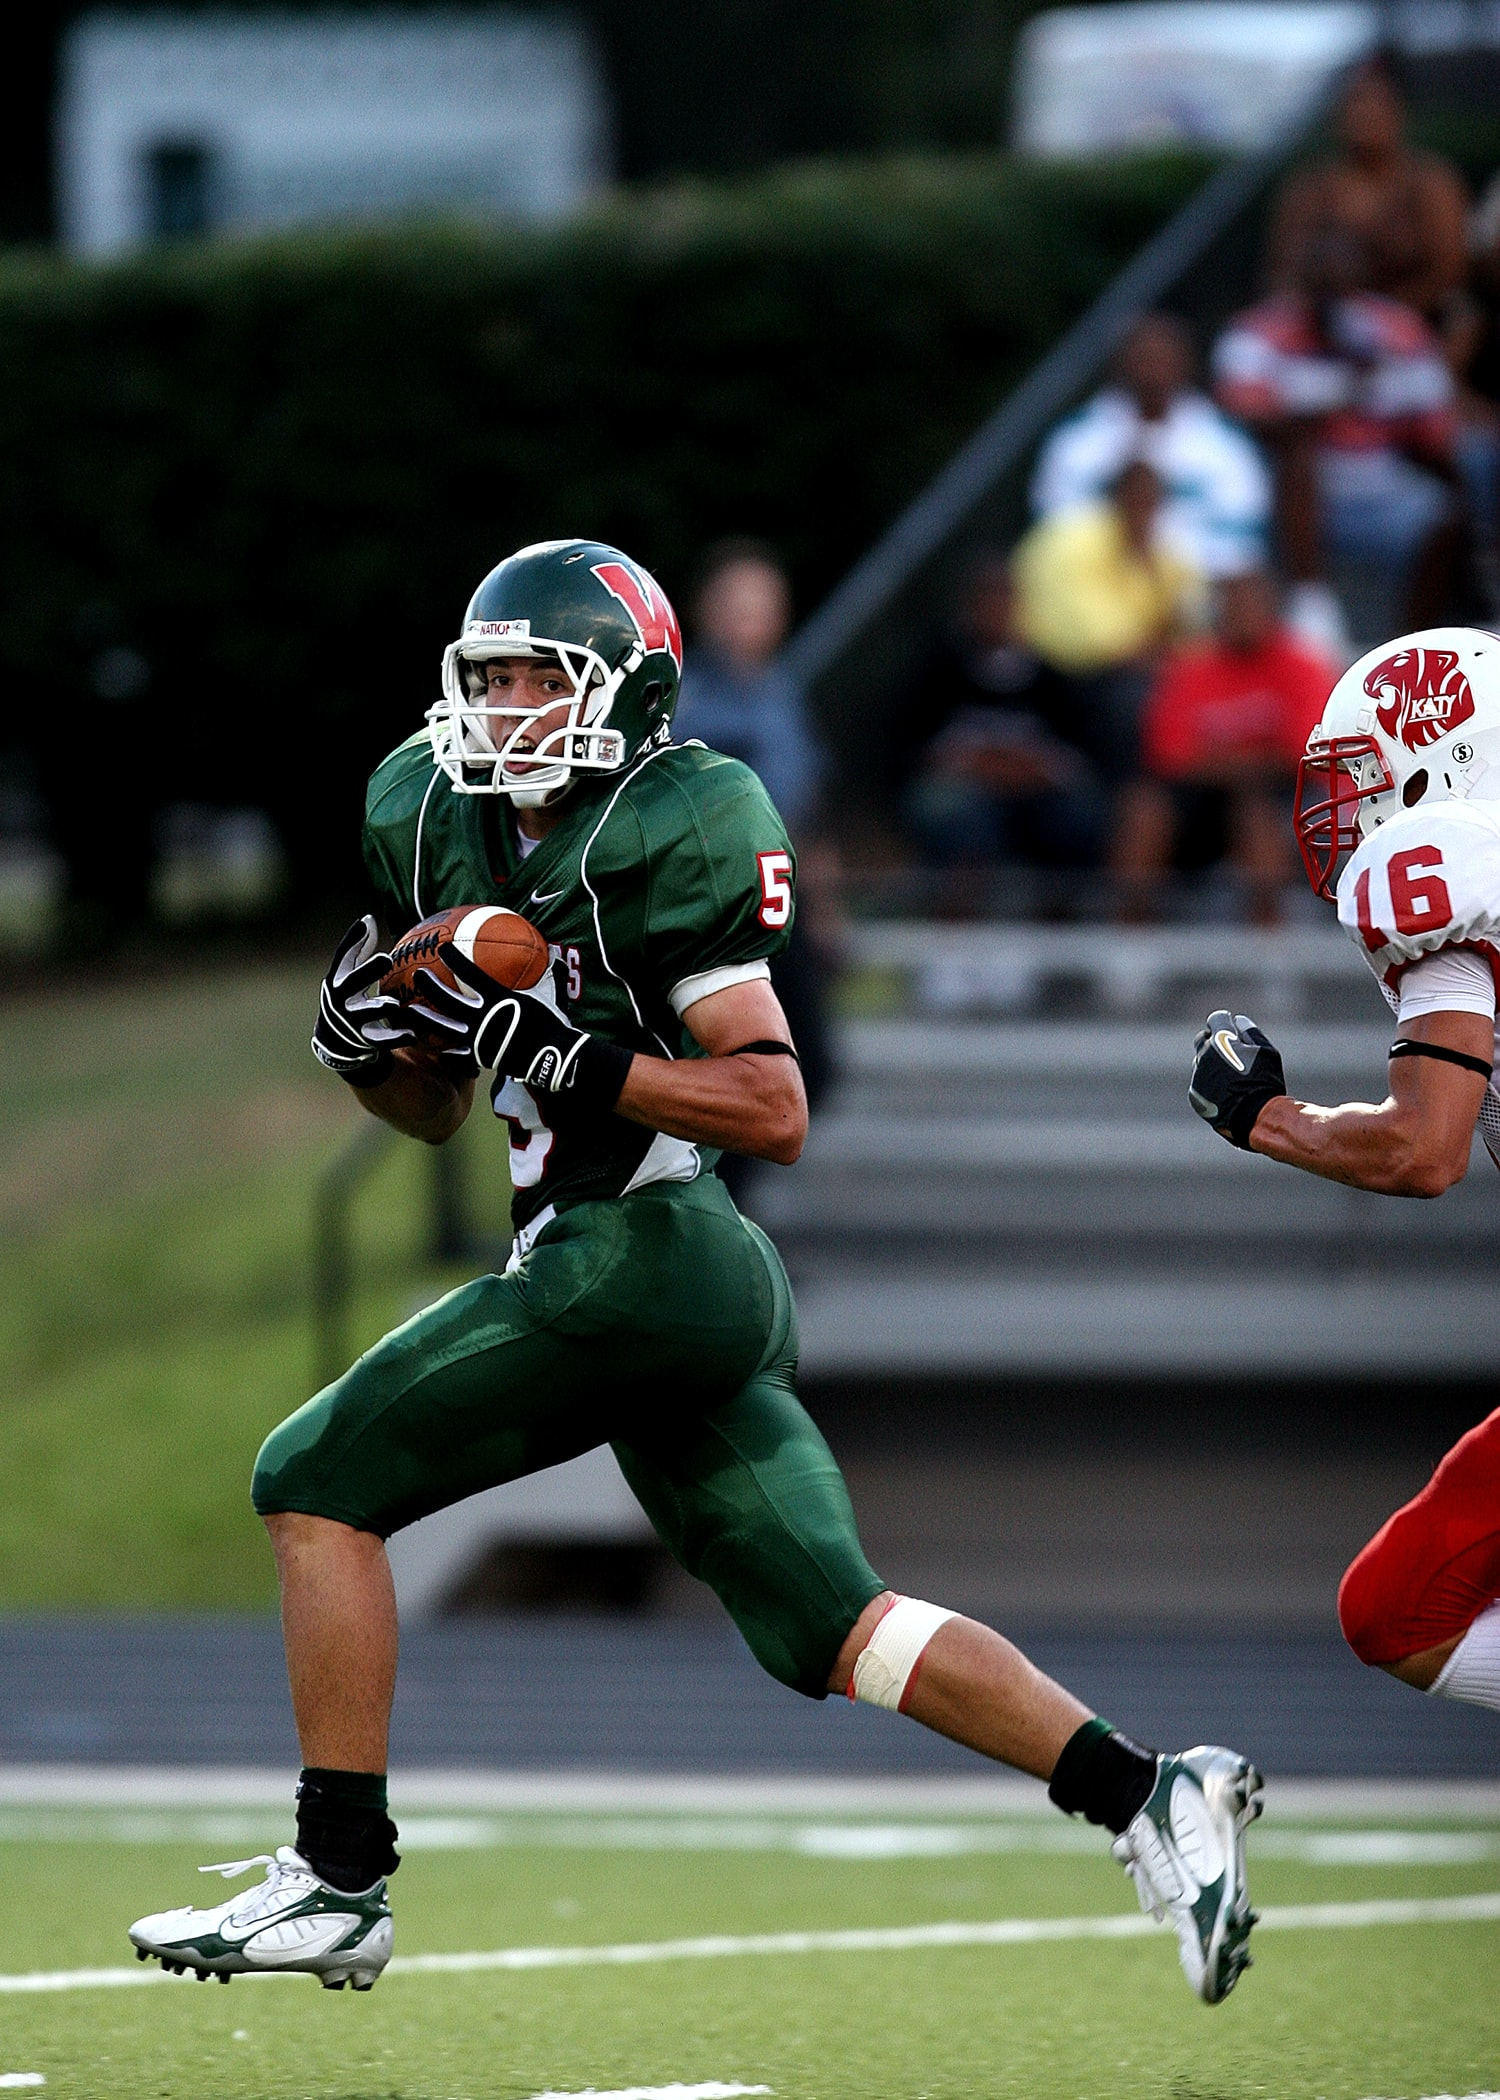 man in green 5 American football jersey holding ball